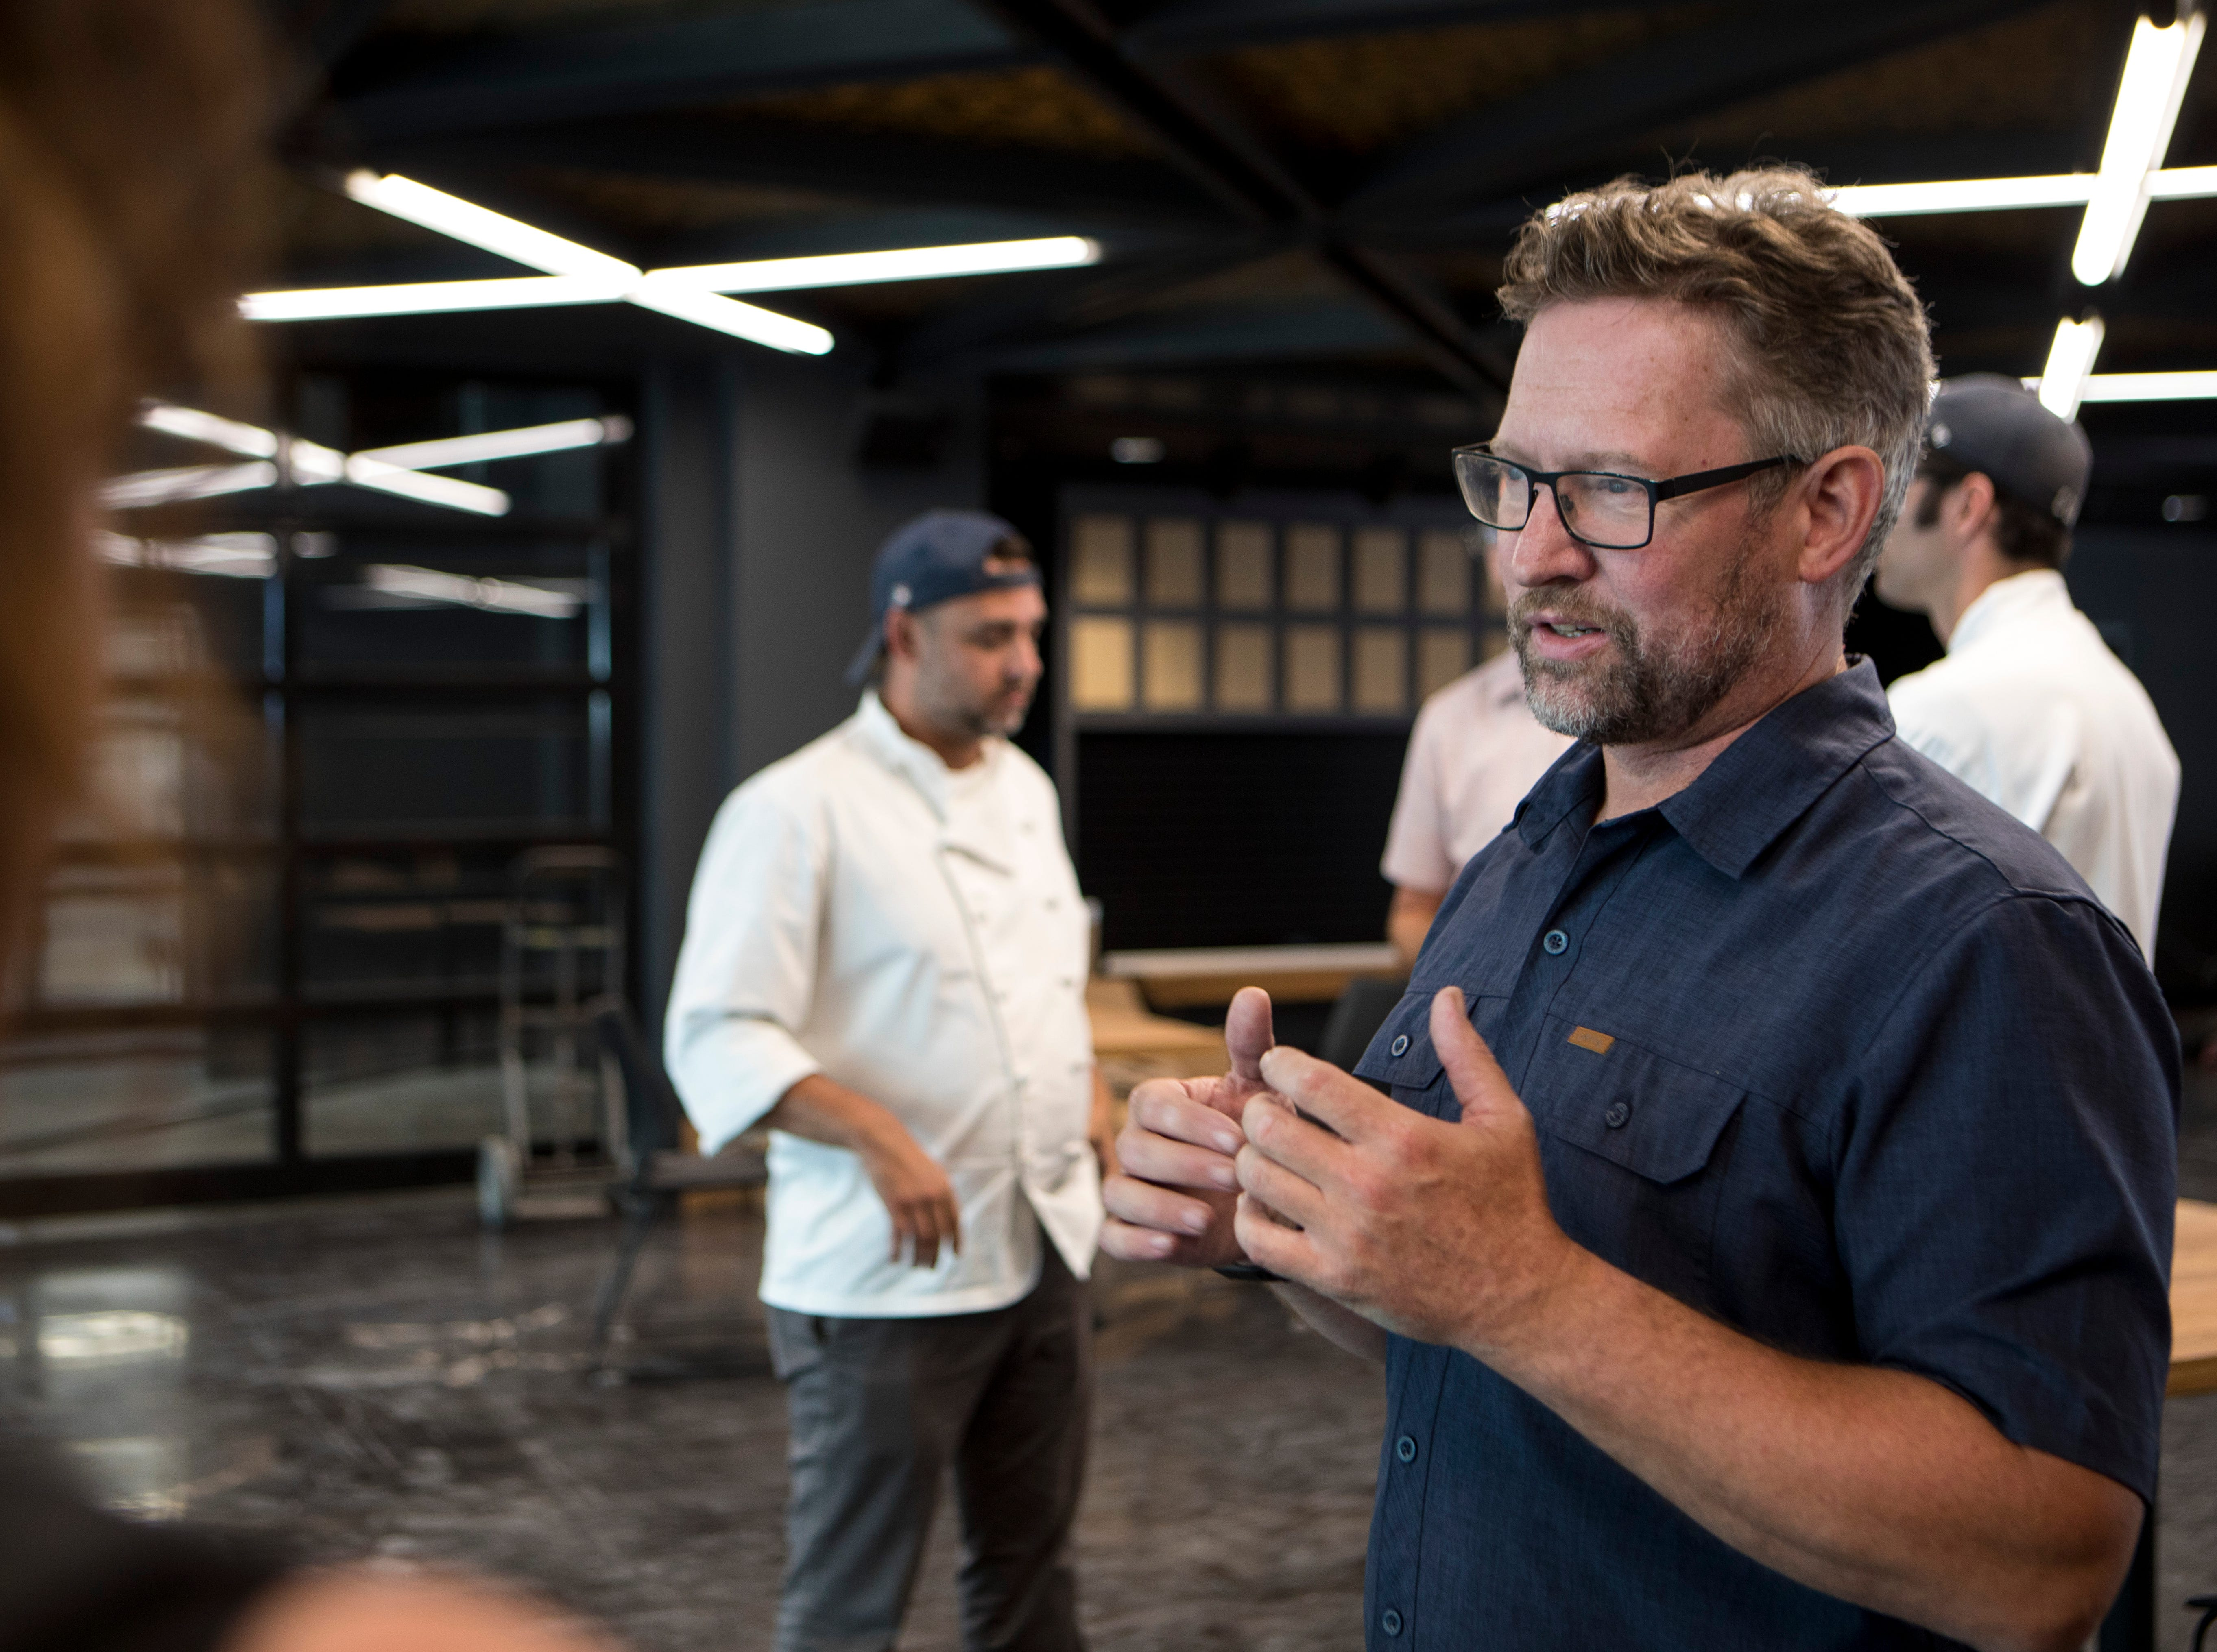 Jim McCabe, founder of MKE Brewing, talks about the technology and the excitement of opening a new brewery at 1128 N. 9th St. MKE Brewing started life as the Milwaukee Ale House which was followed by the 2nd Street location of MKE Brewing. The new brewery will hold its grand opening on Sept. 15.